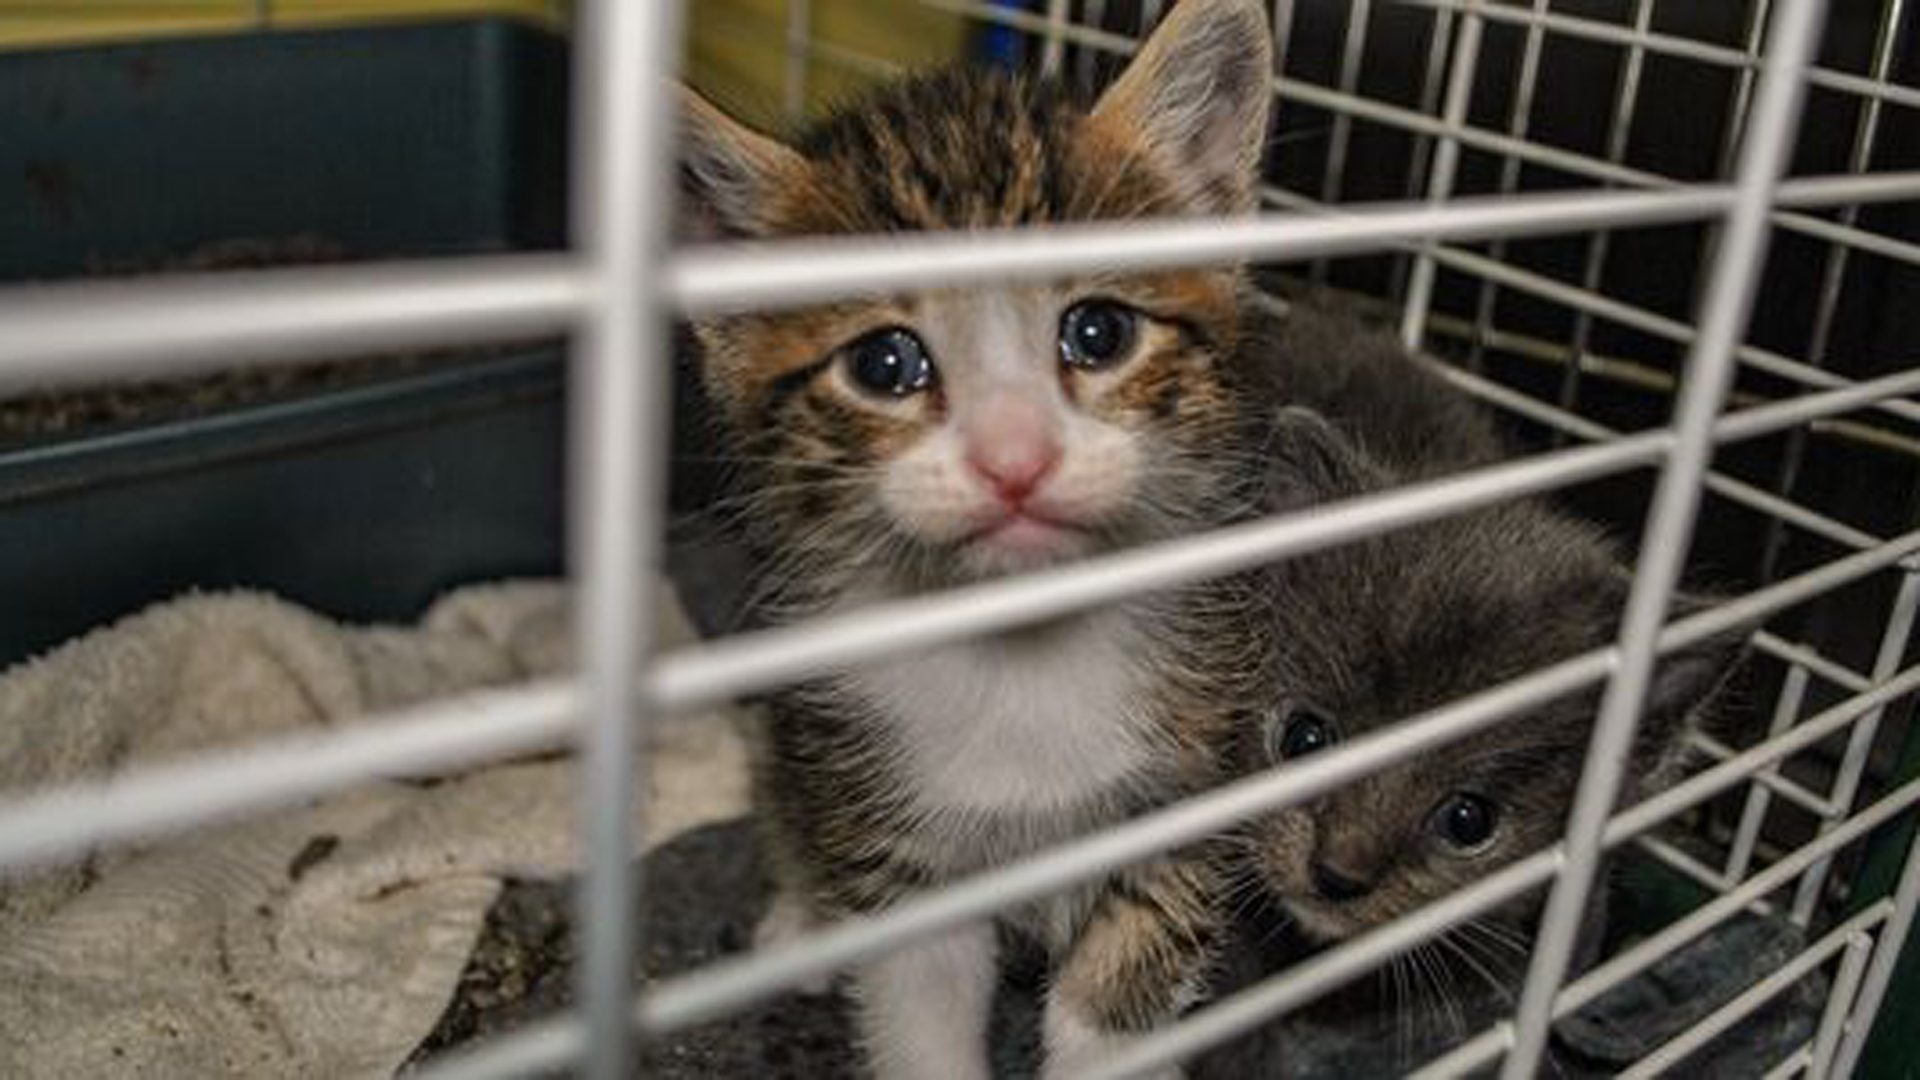 A photo of a kitten in a cage is seen in a Care2 petition that sought to end the cat killings at USDA.